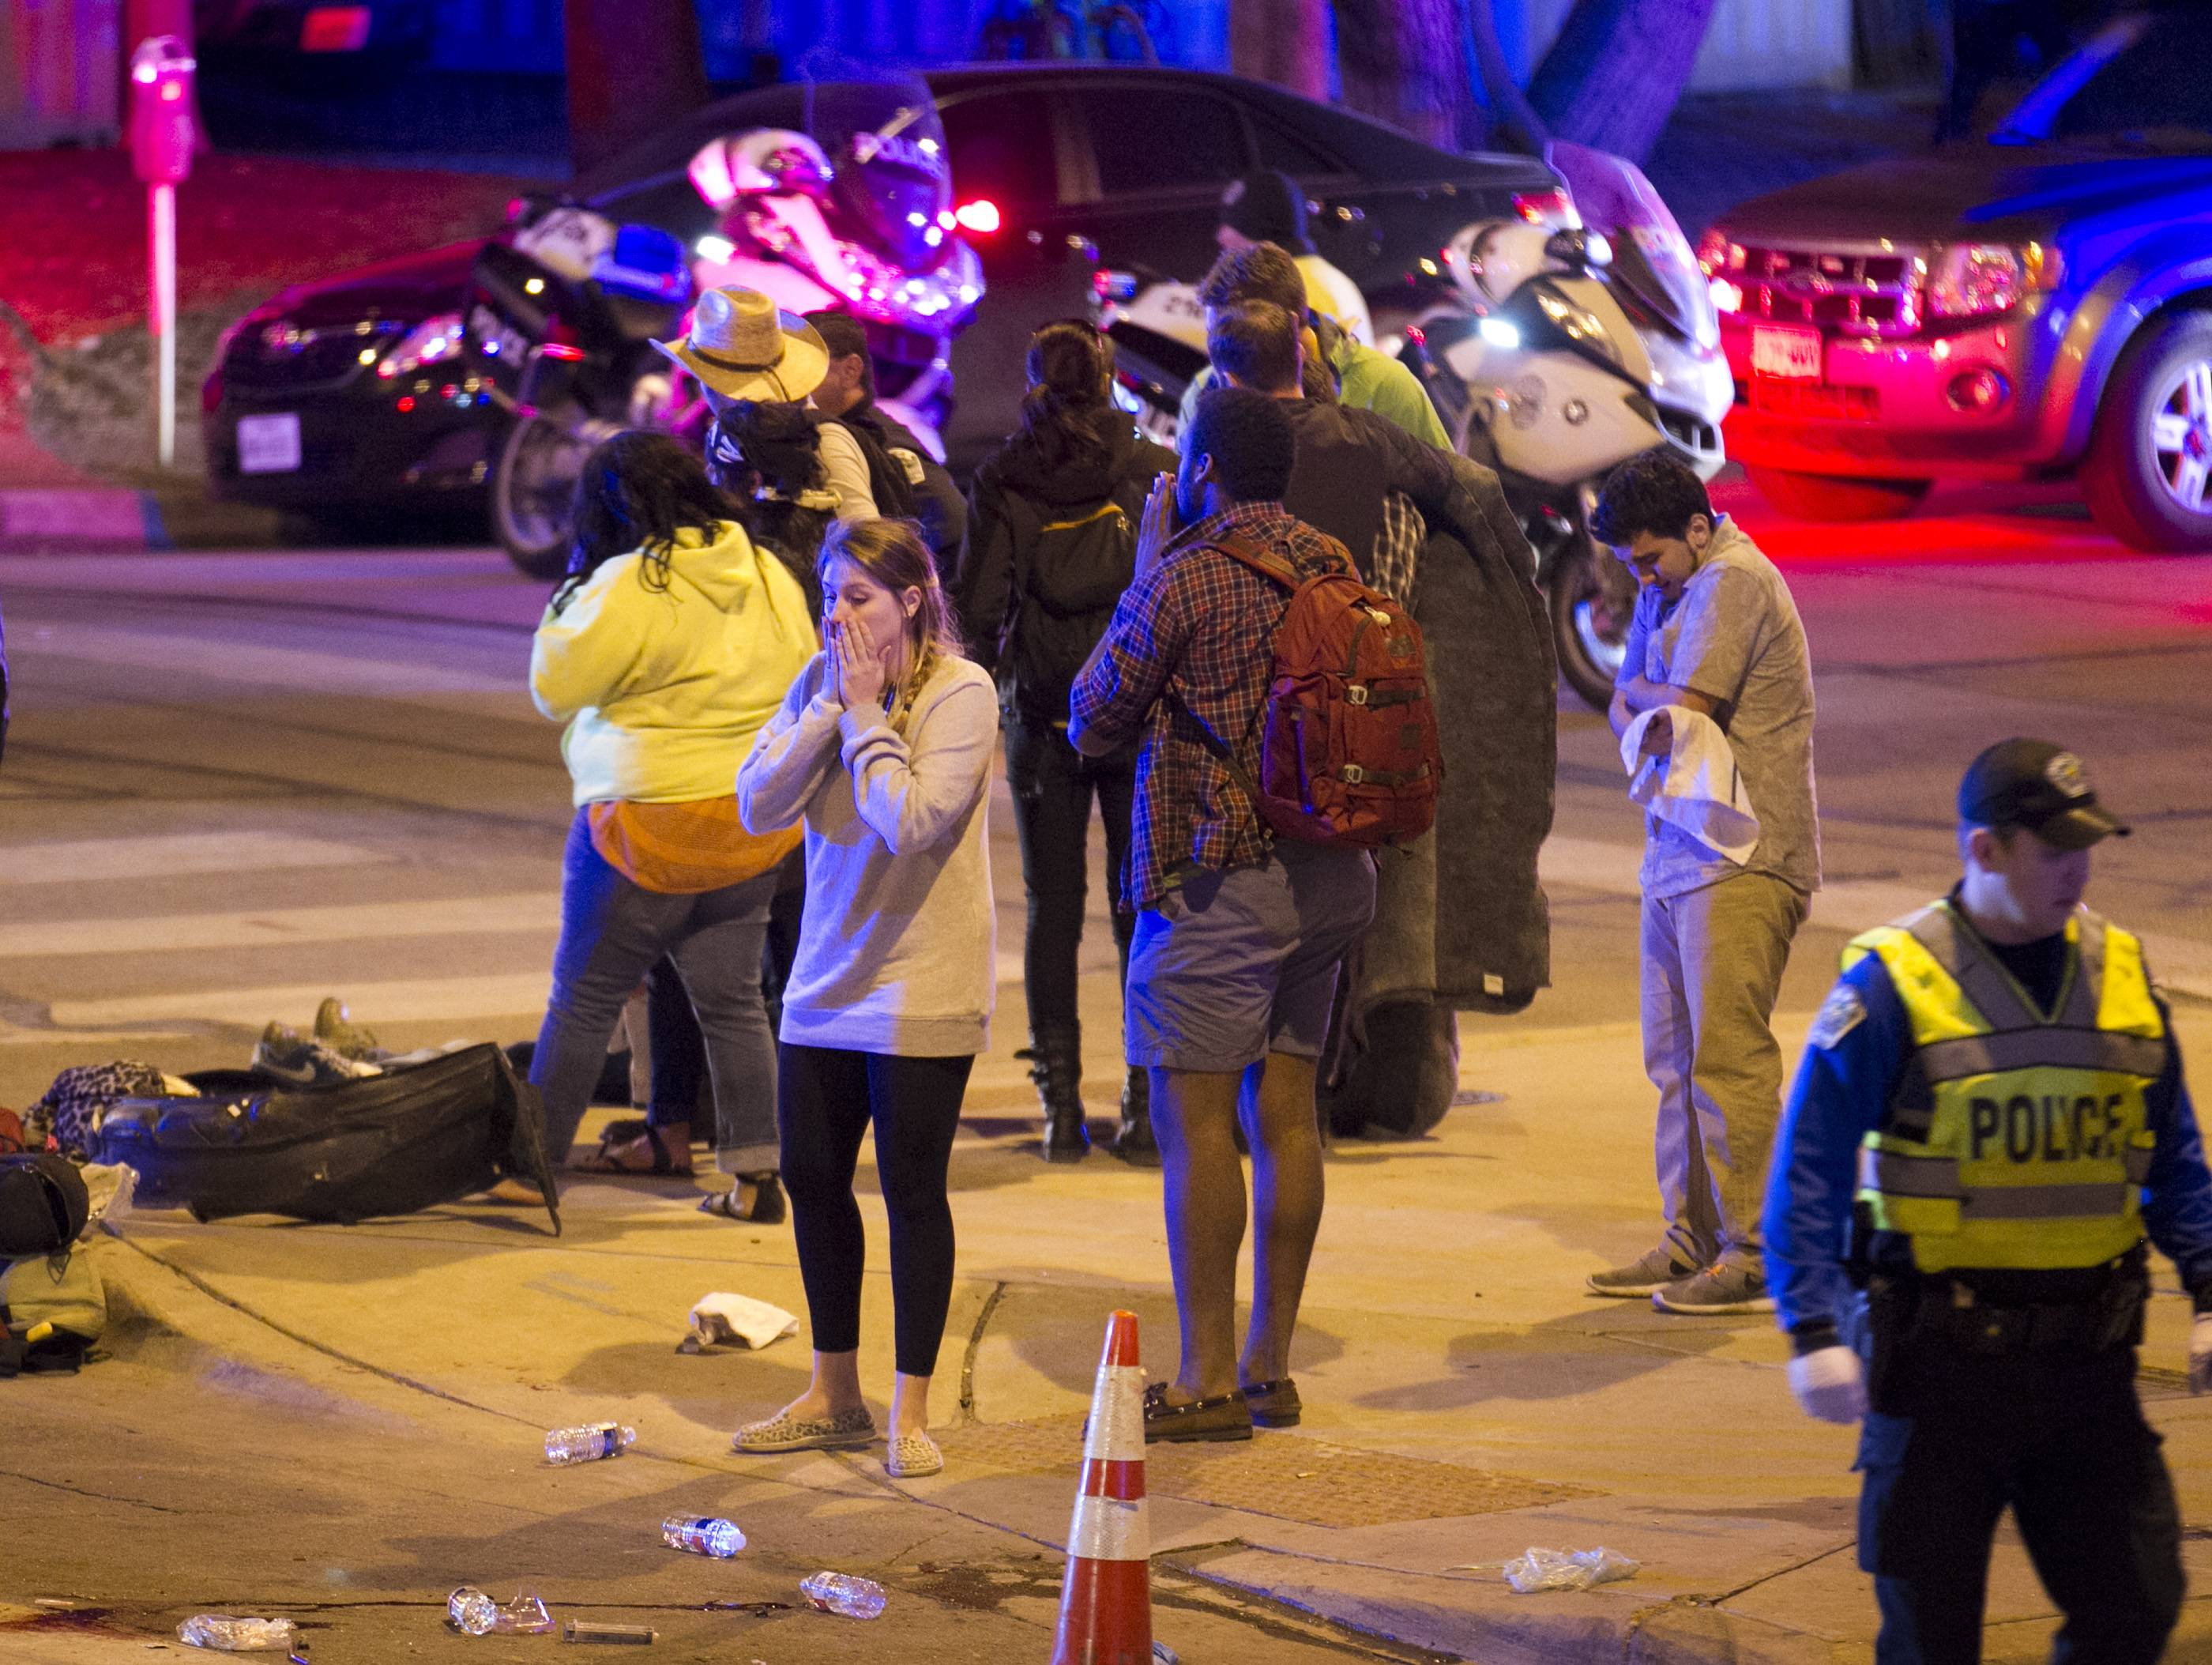 Bystanders react after several people were struck by a vehicle on Red River Street in downtown Austin, Texas, at SXSW on Wednesday March 12, 2014. Police say two people were confirmed dead at the scene after a car drove through temporary barricades set up for the South By Southwest festival and struck a crowd of pedestrians.